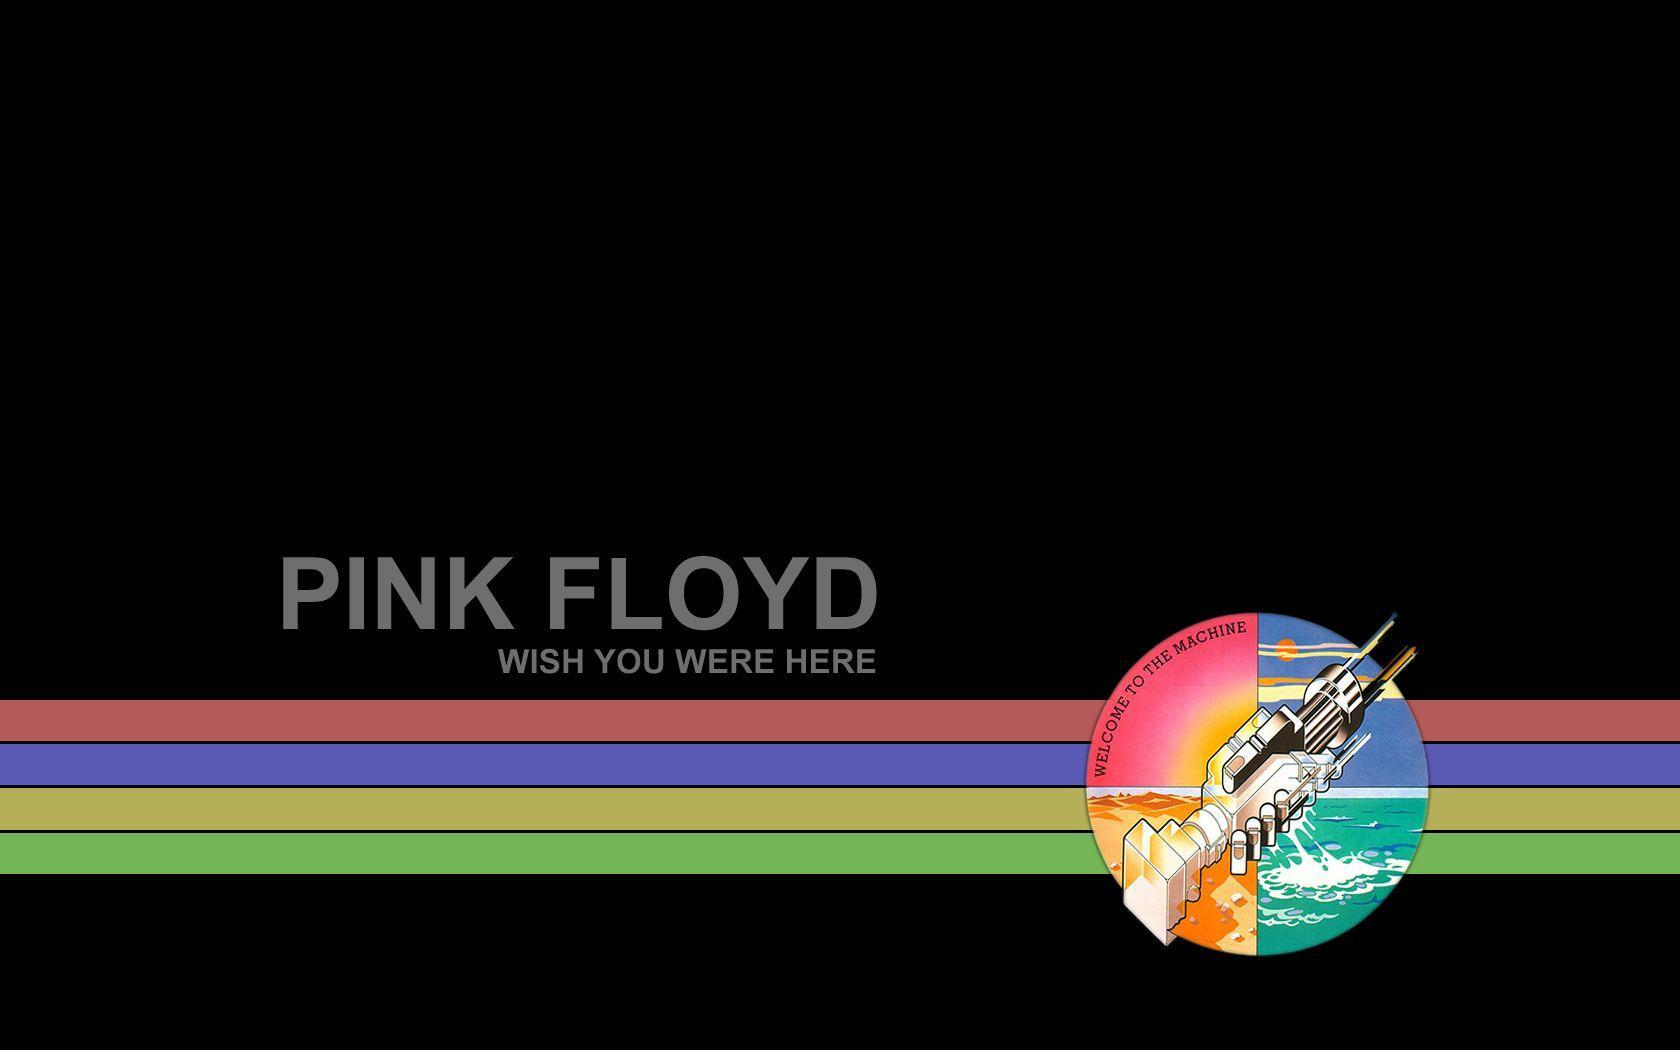 Best Pink Floyd Albums, Wish You Were Here, Animals and The Wall